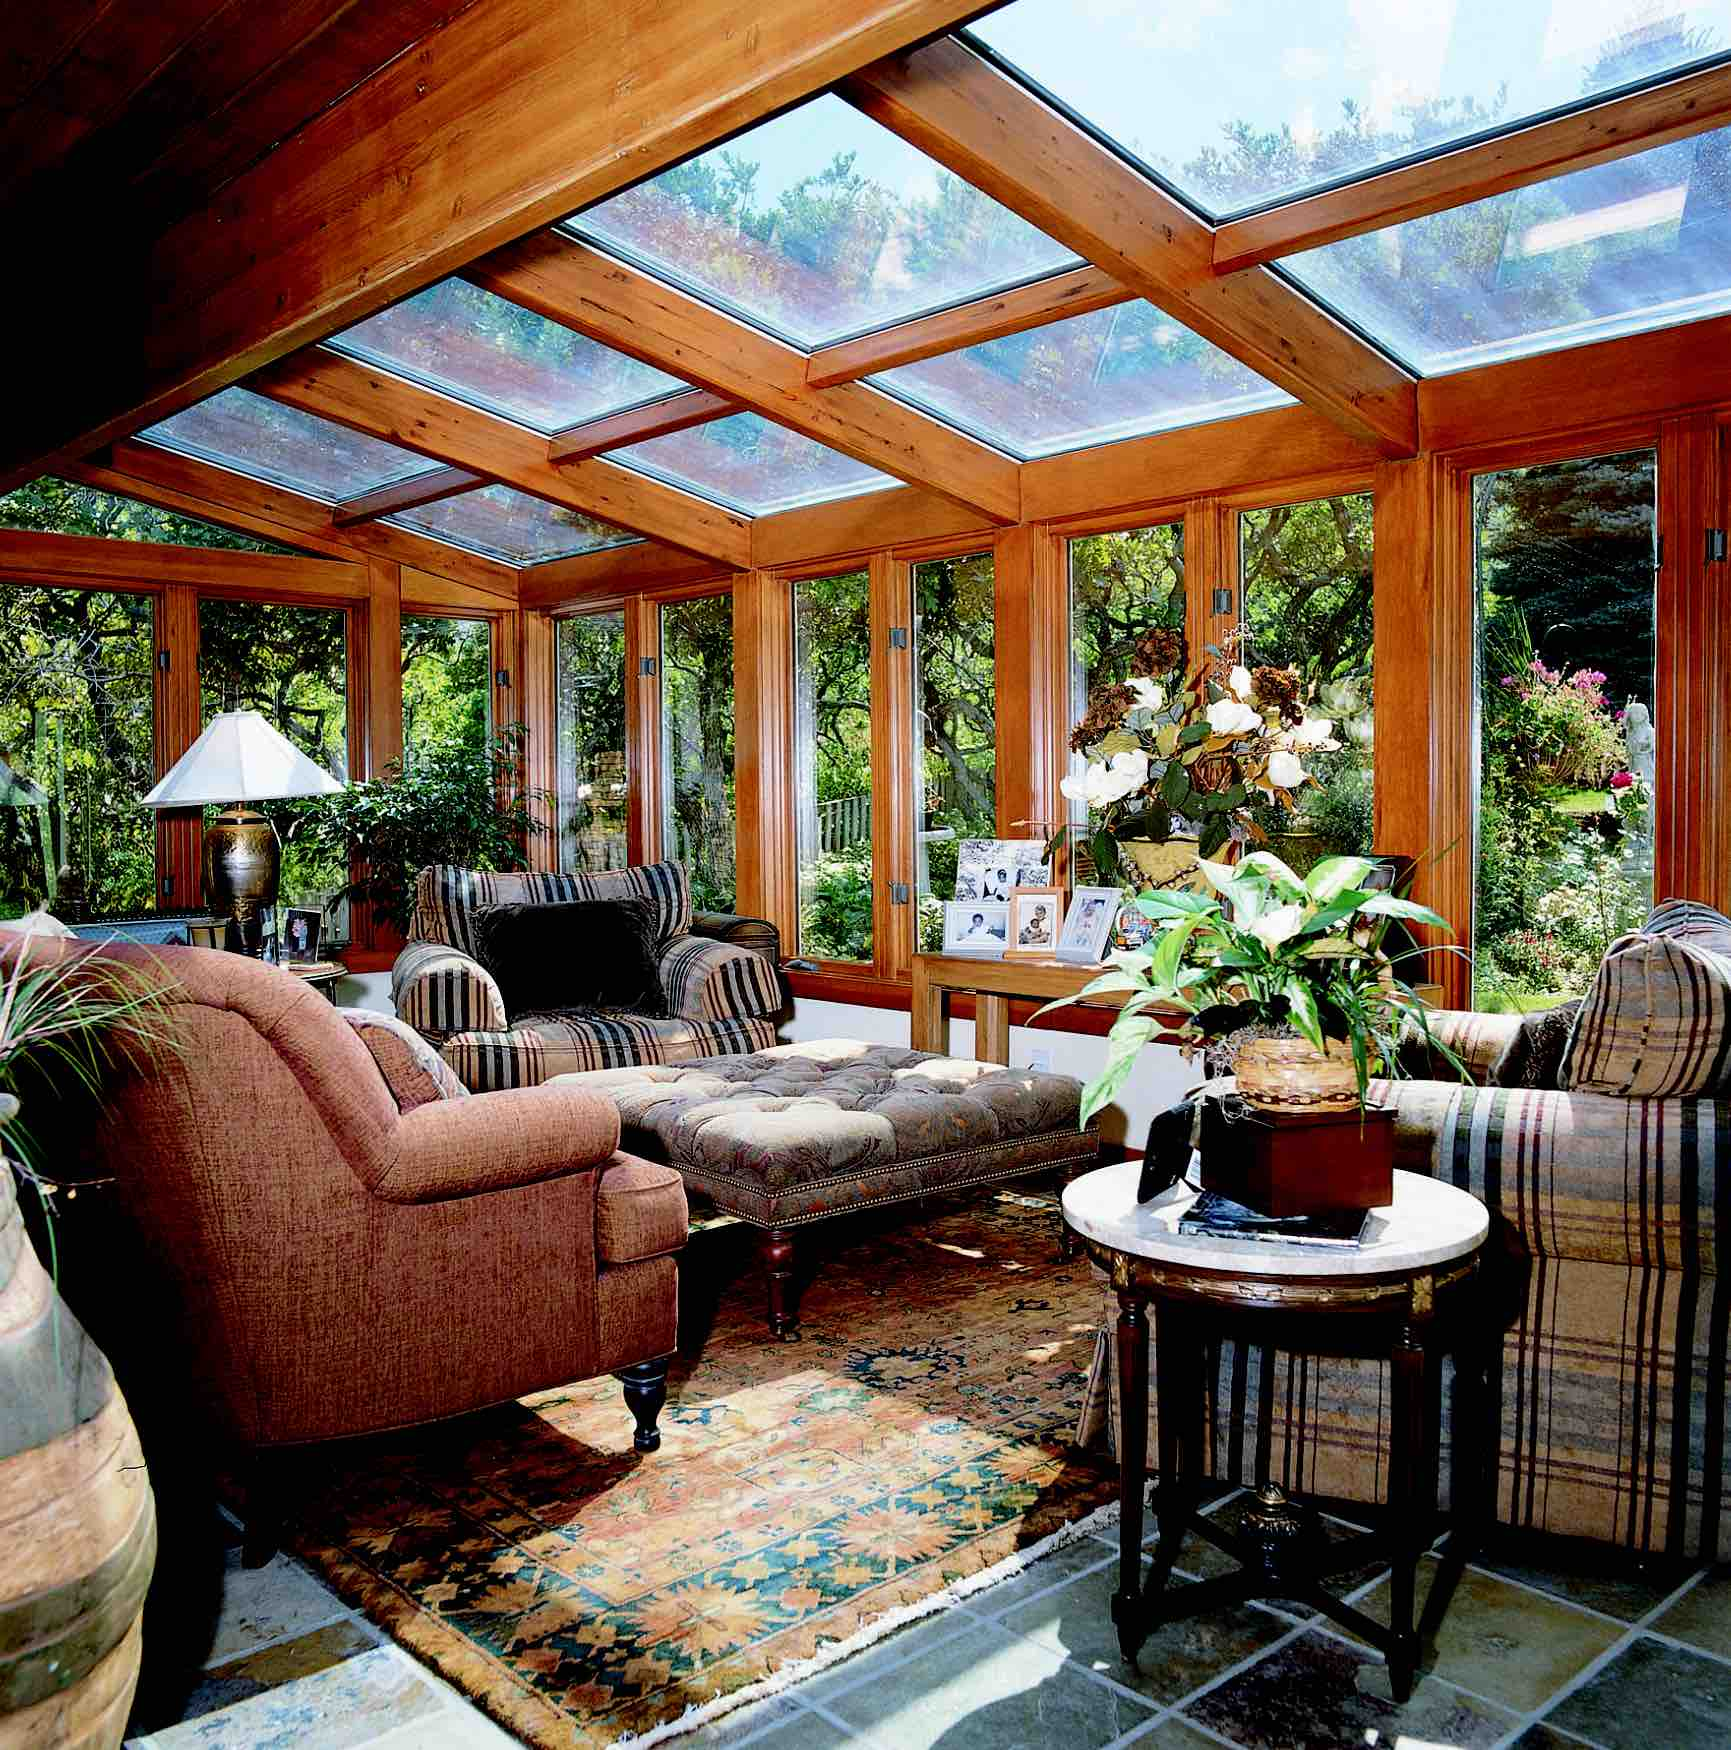 Sunrooms four seasons distributor budget glass nanaimo bc for Solarium room additions